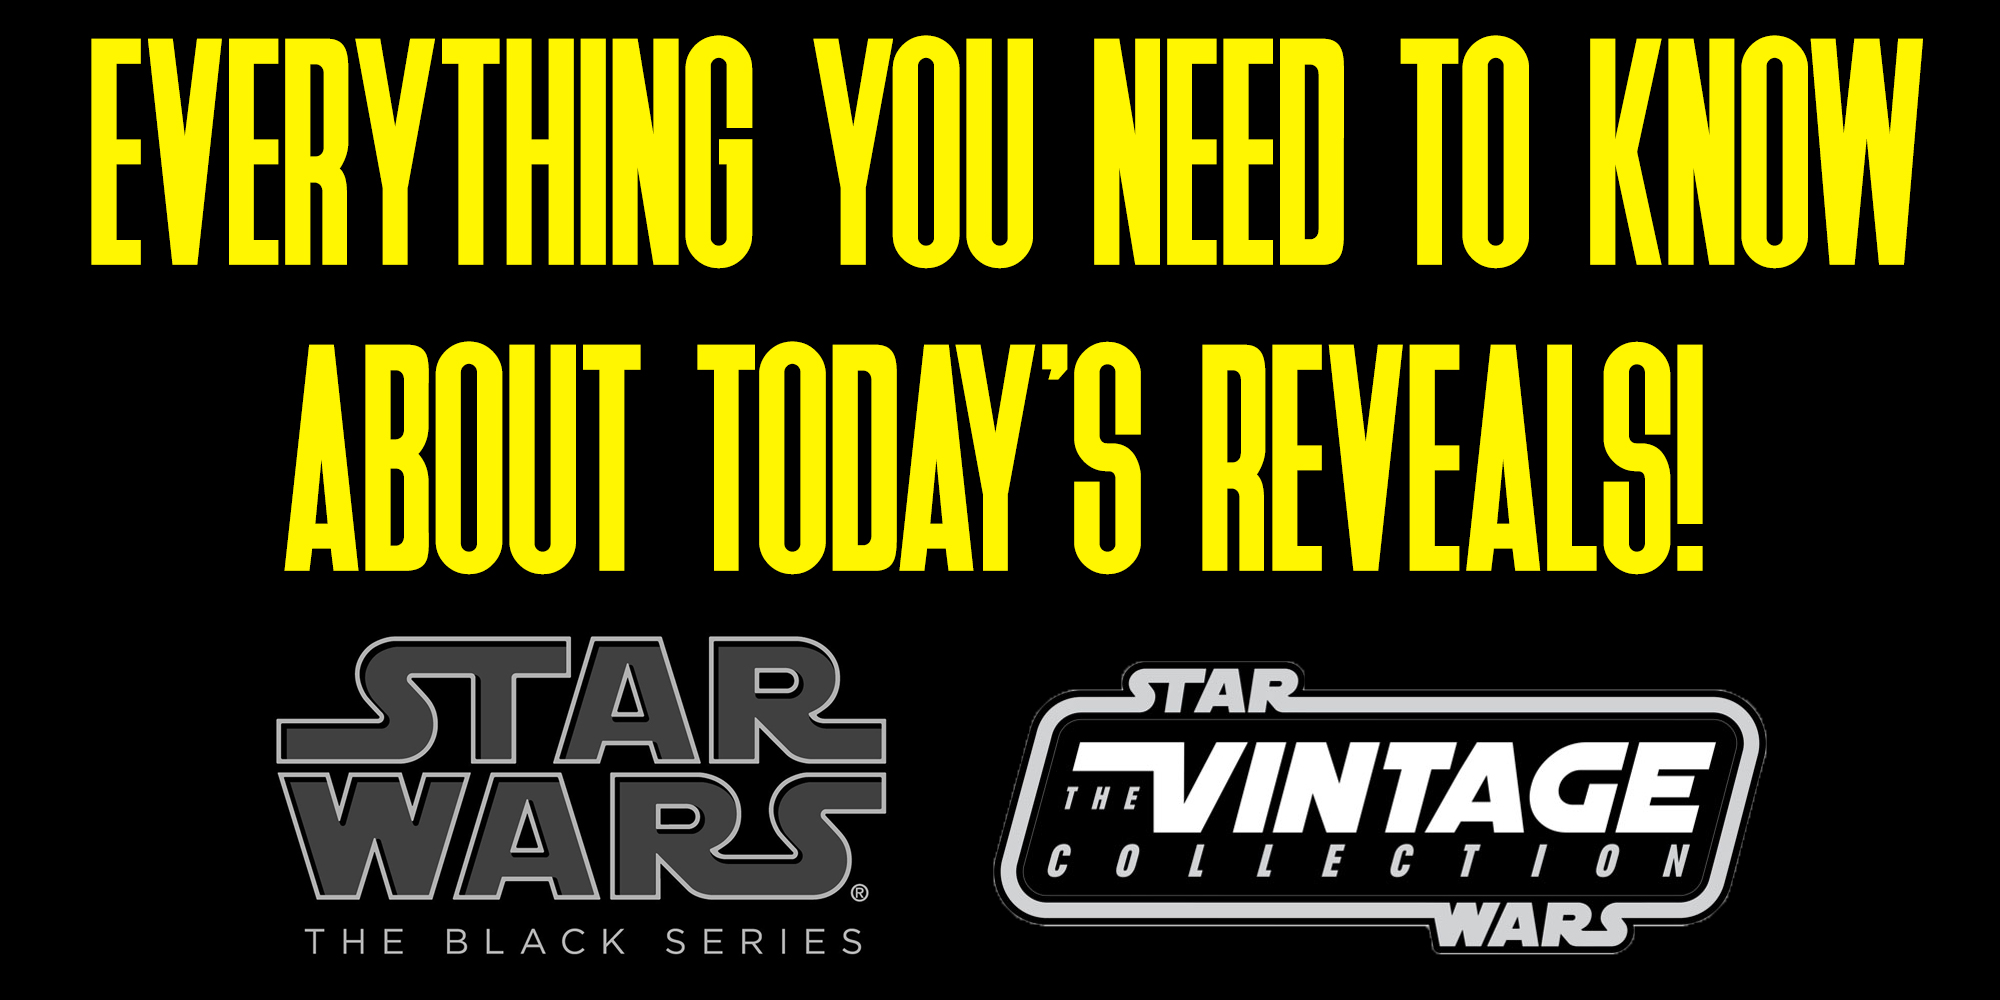 Star Wars Black Series And Vintage Collection Reveals for 2020